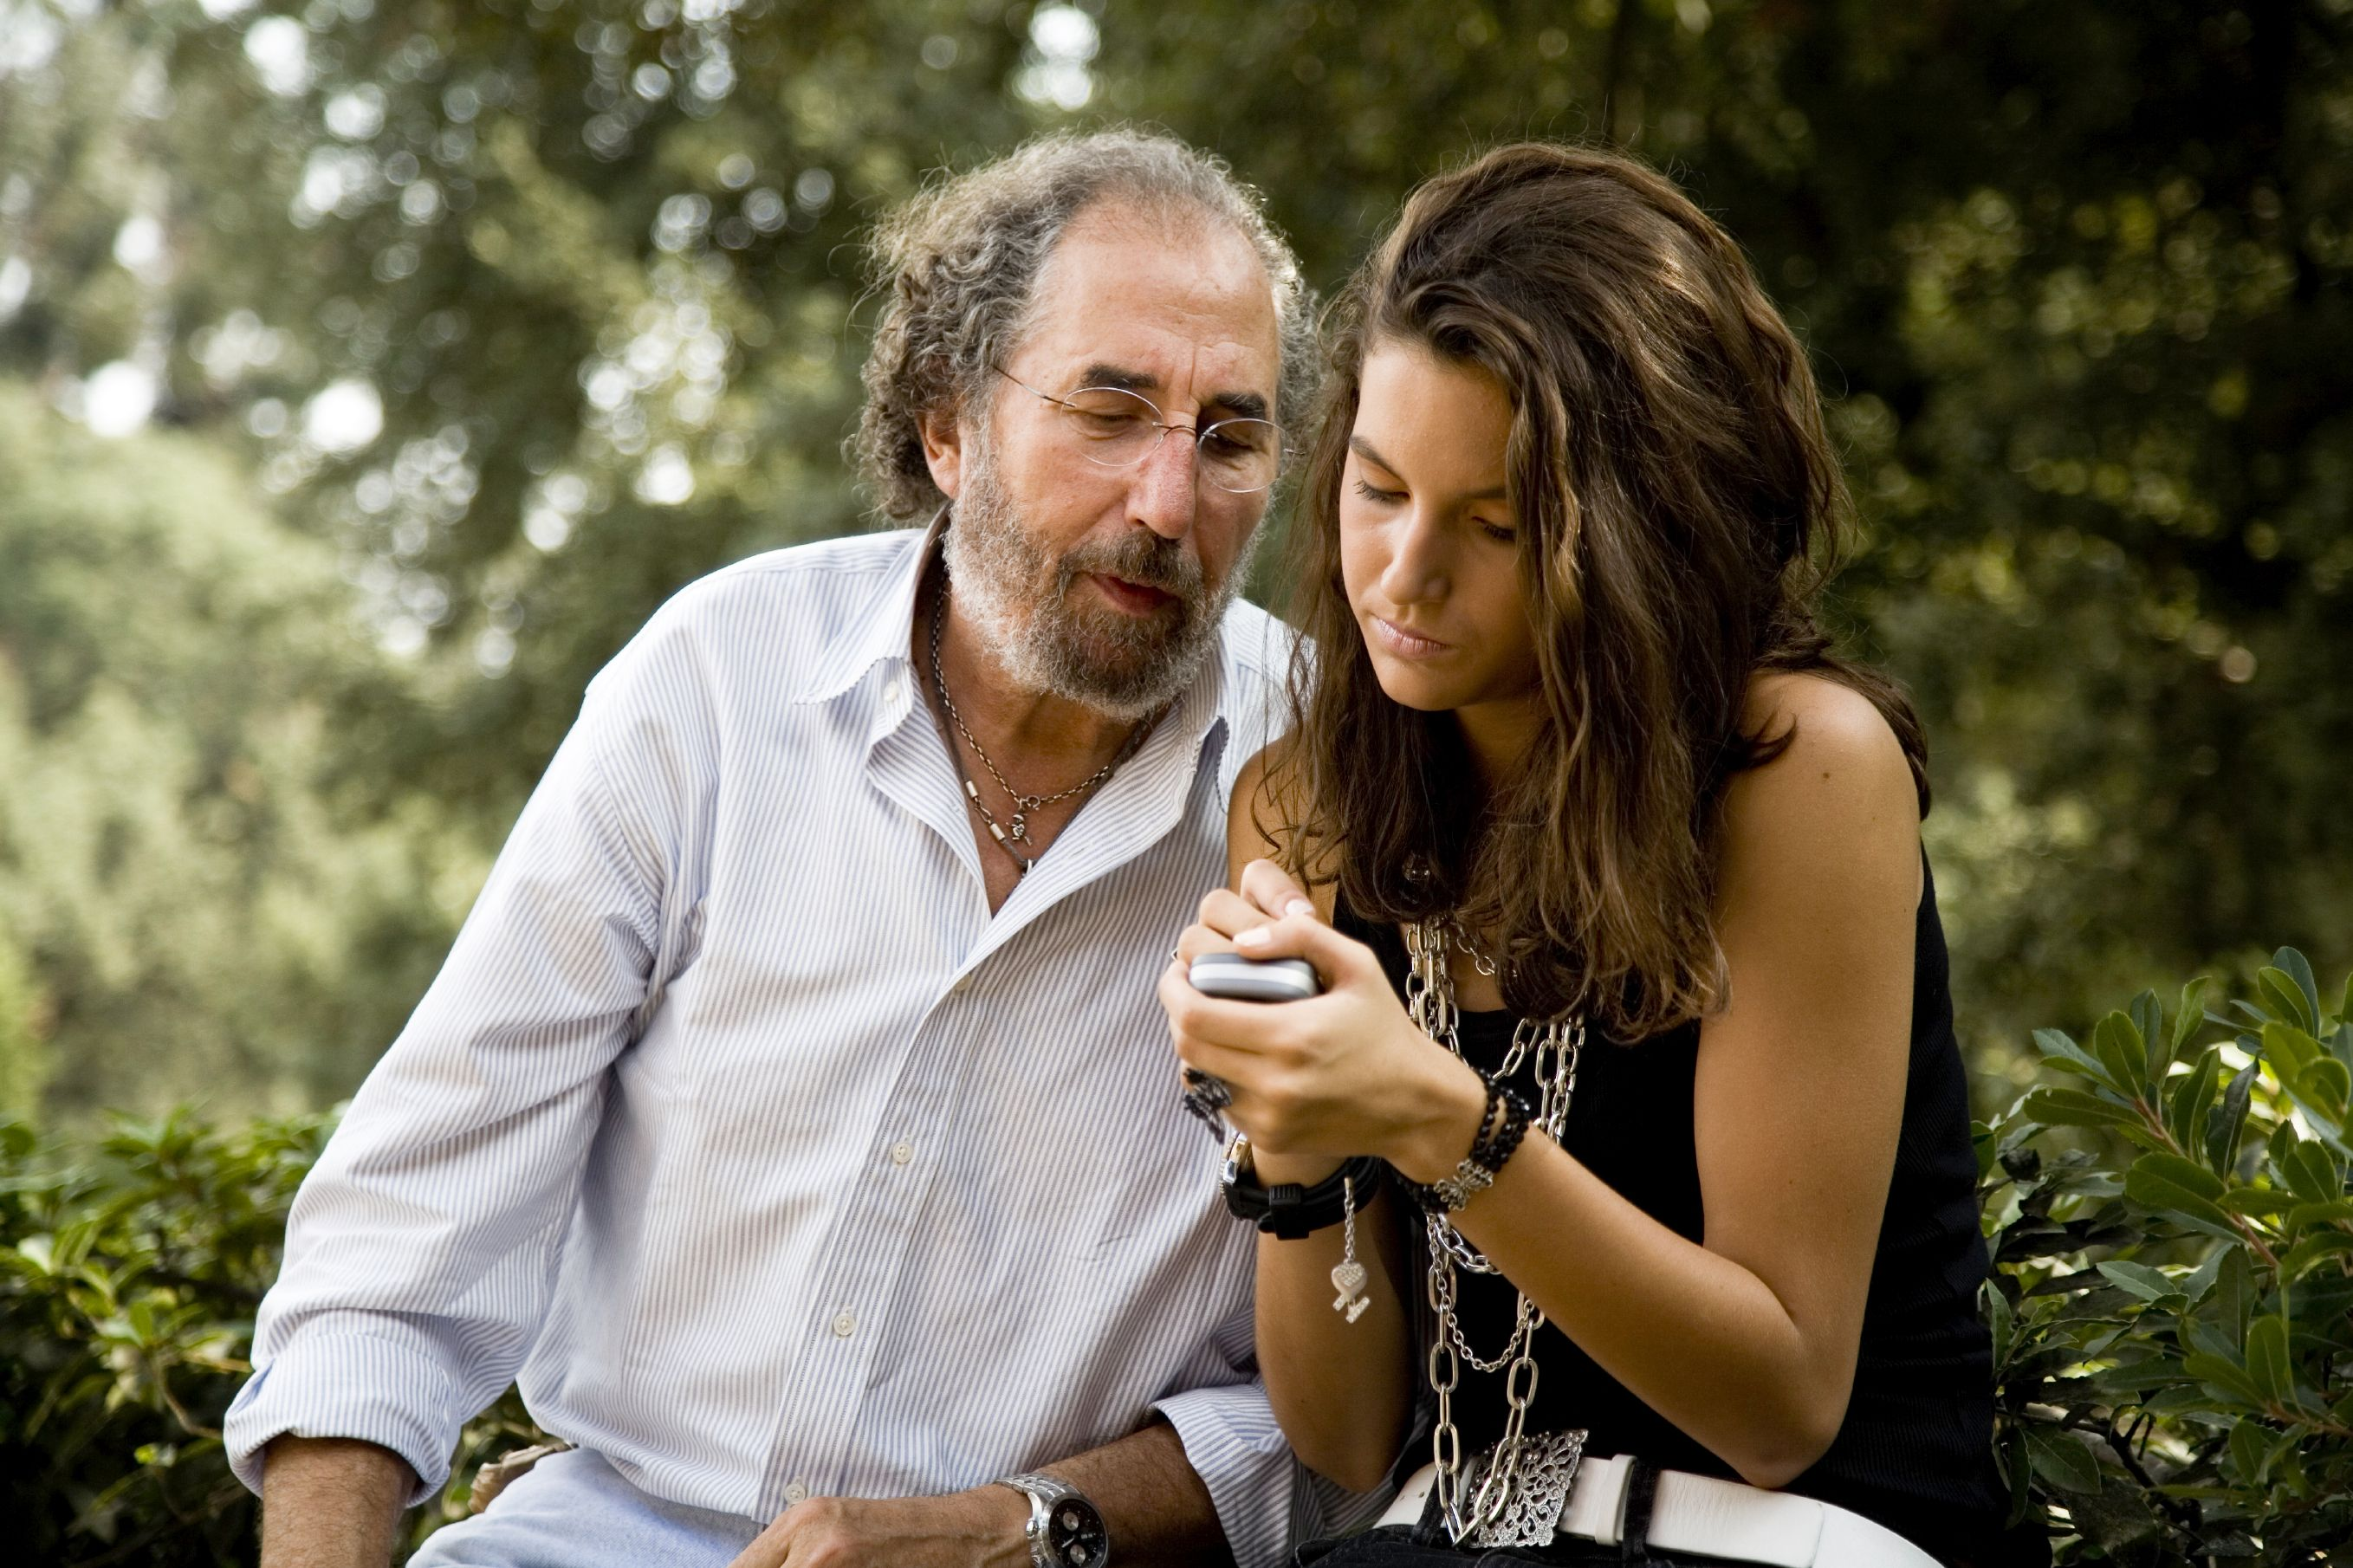 A teenager showing her grandfather an app on her phone